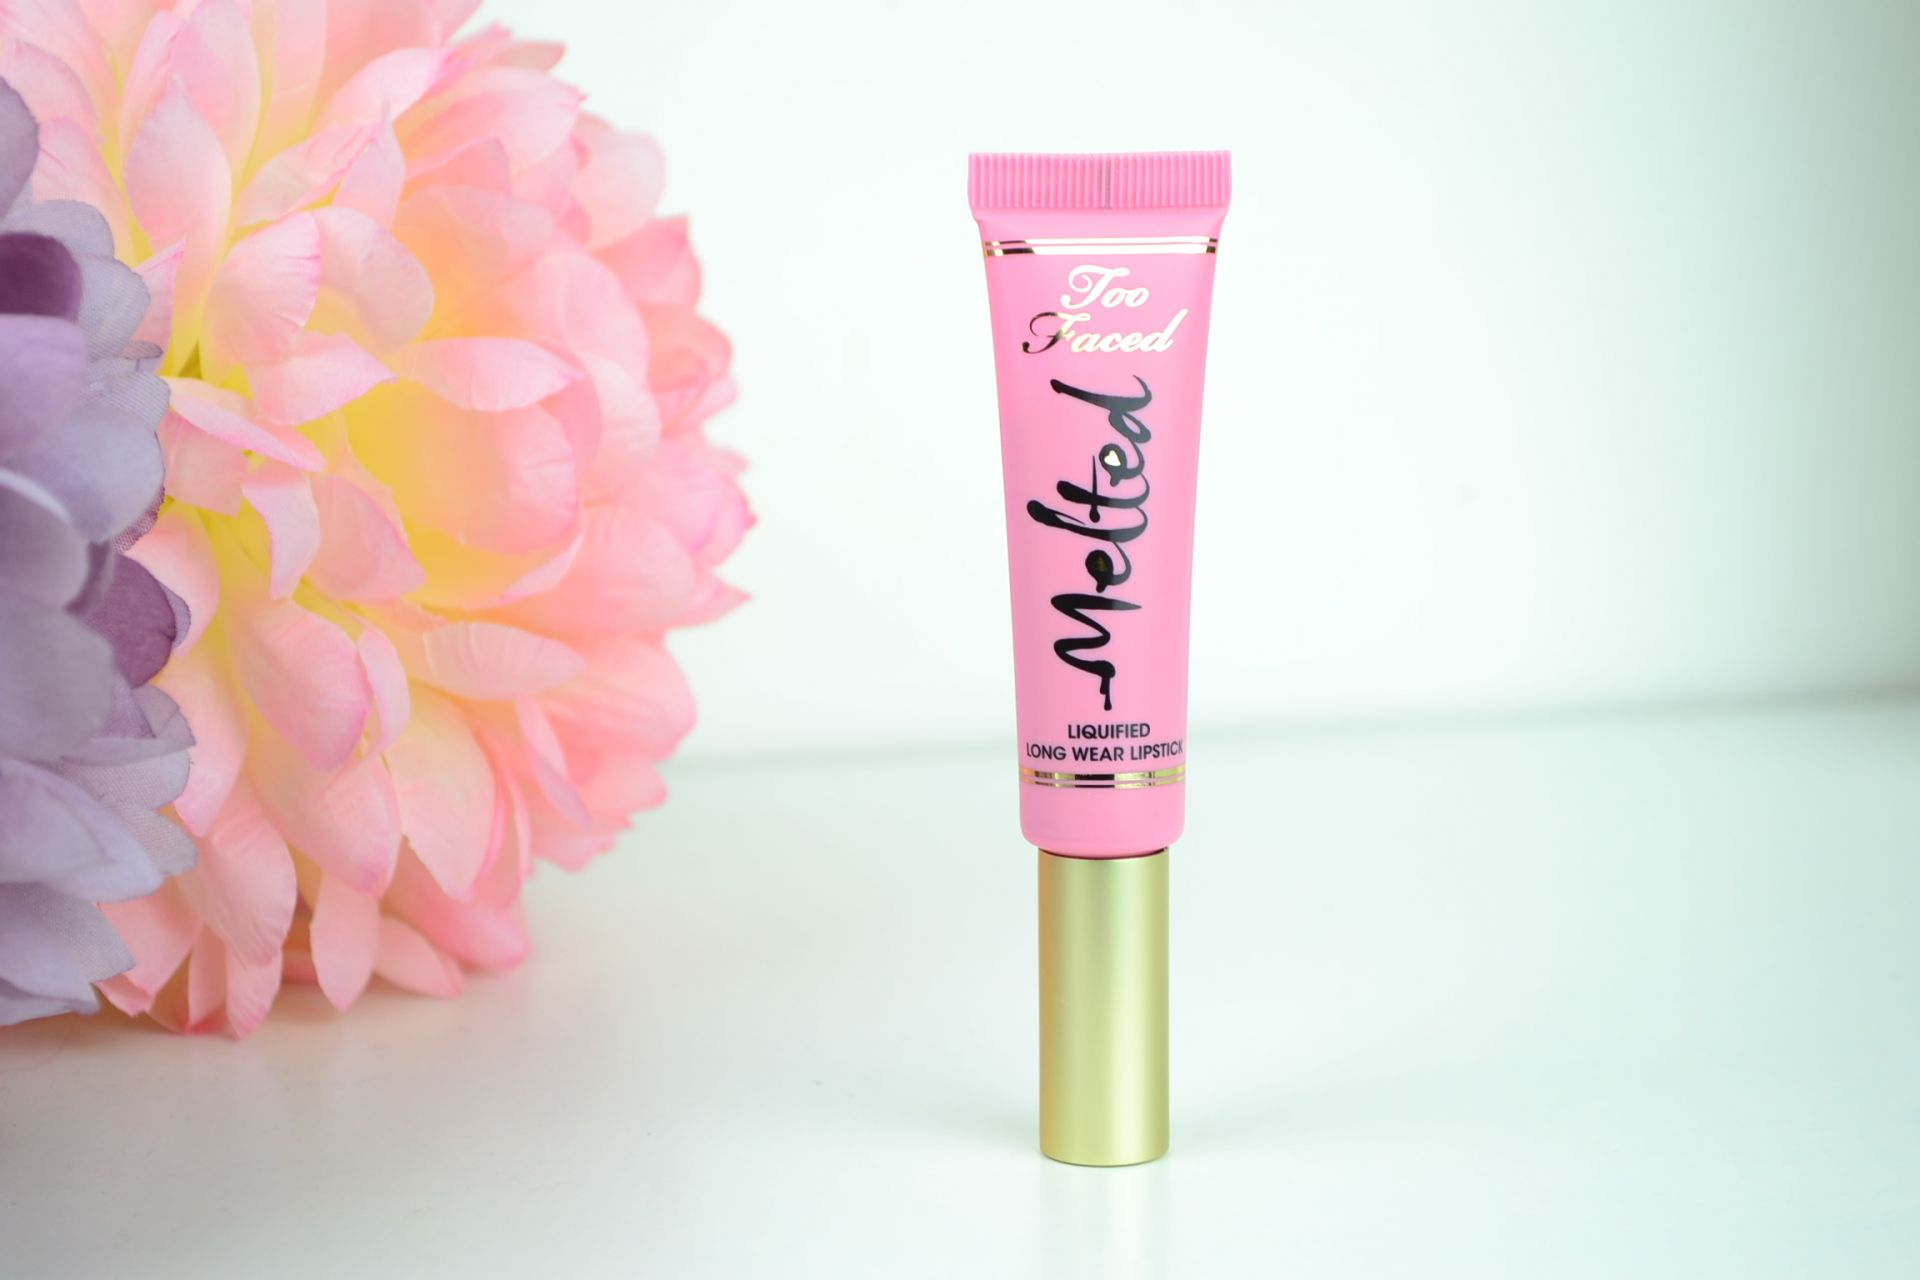 too-faced-melted-liquified-lipstick